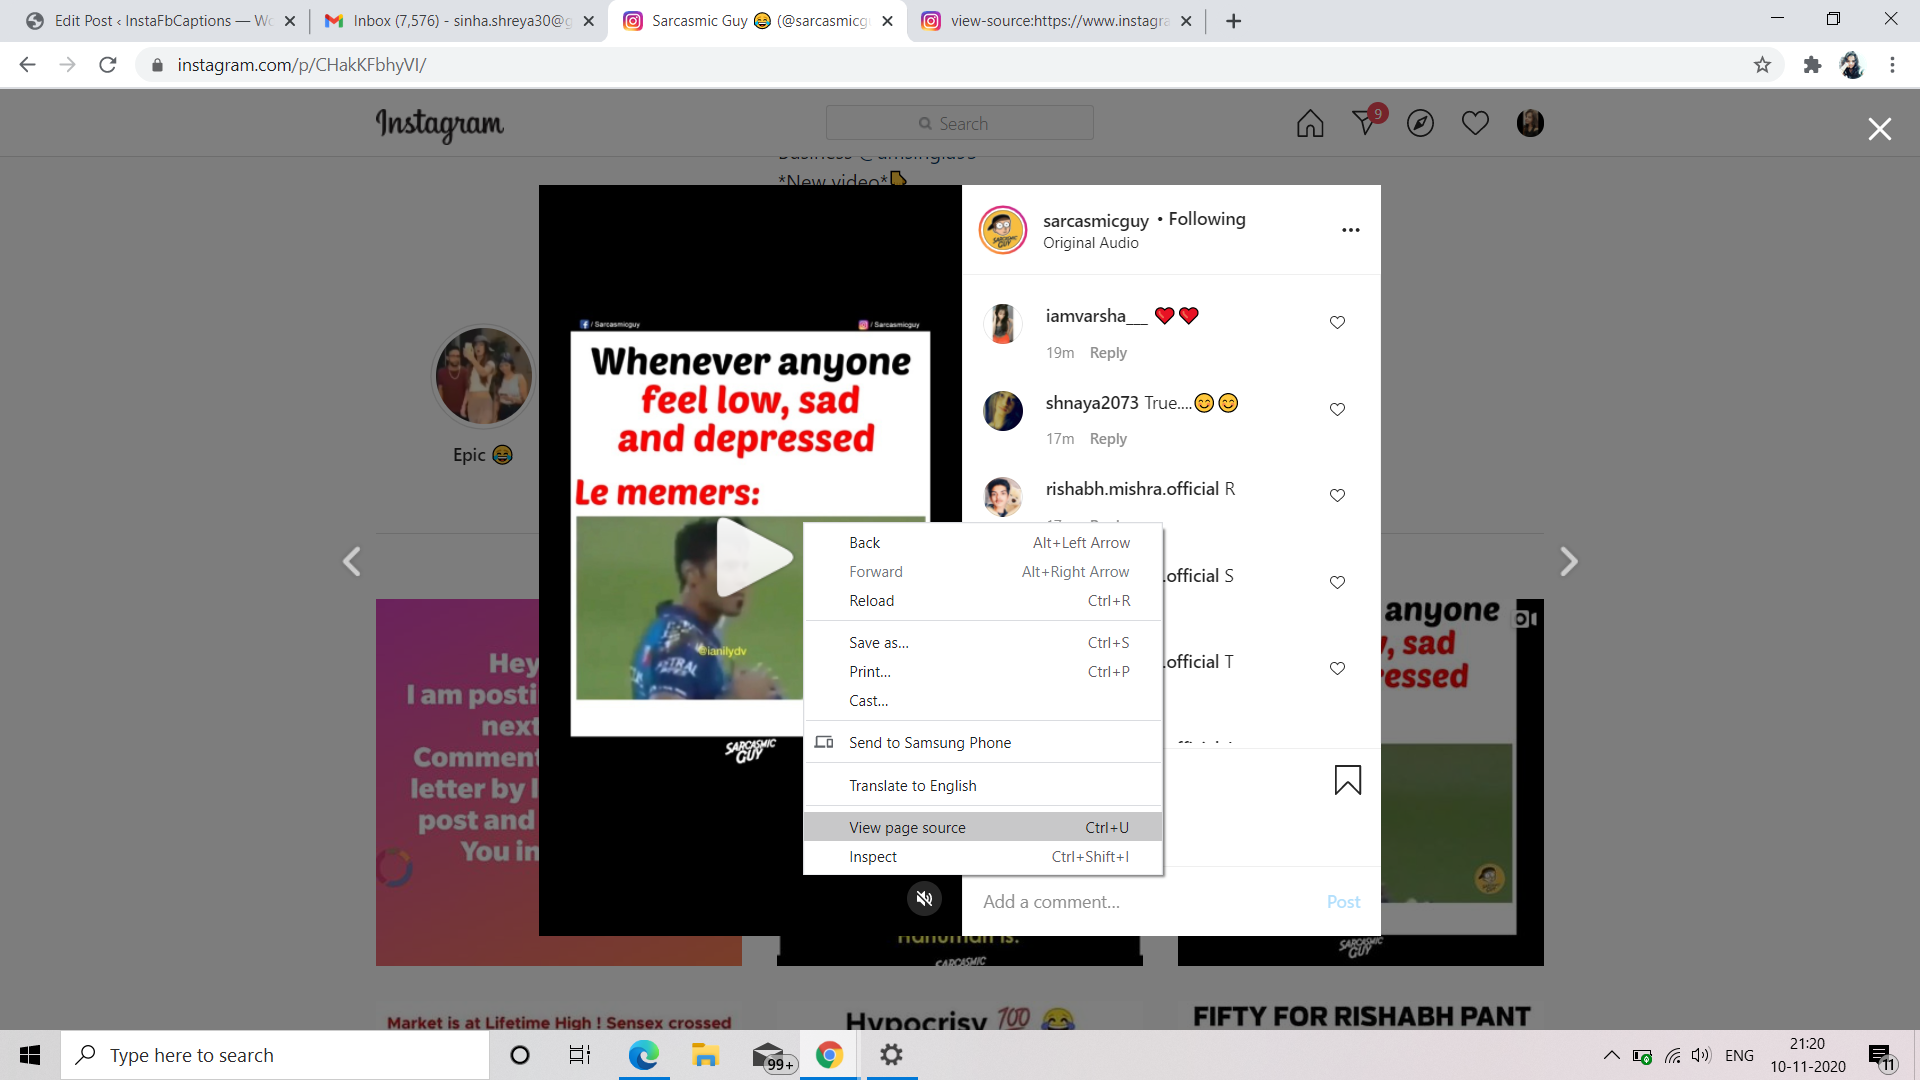 Download Instagram Videos To Computer Via Source Code  - Download Instagram videos to Computer via Source Code - Download Instagram Videos (14 Methods) – PC, Android, iPhone, Apps